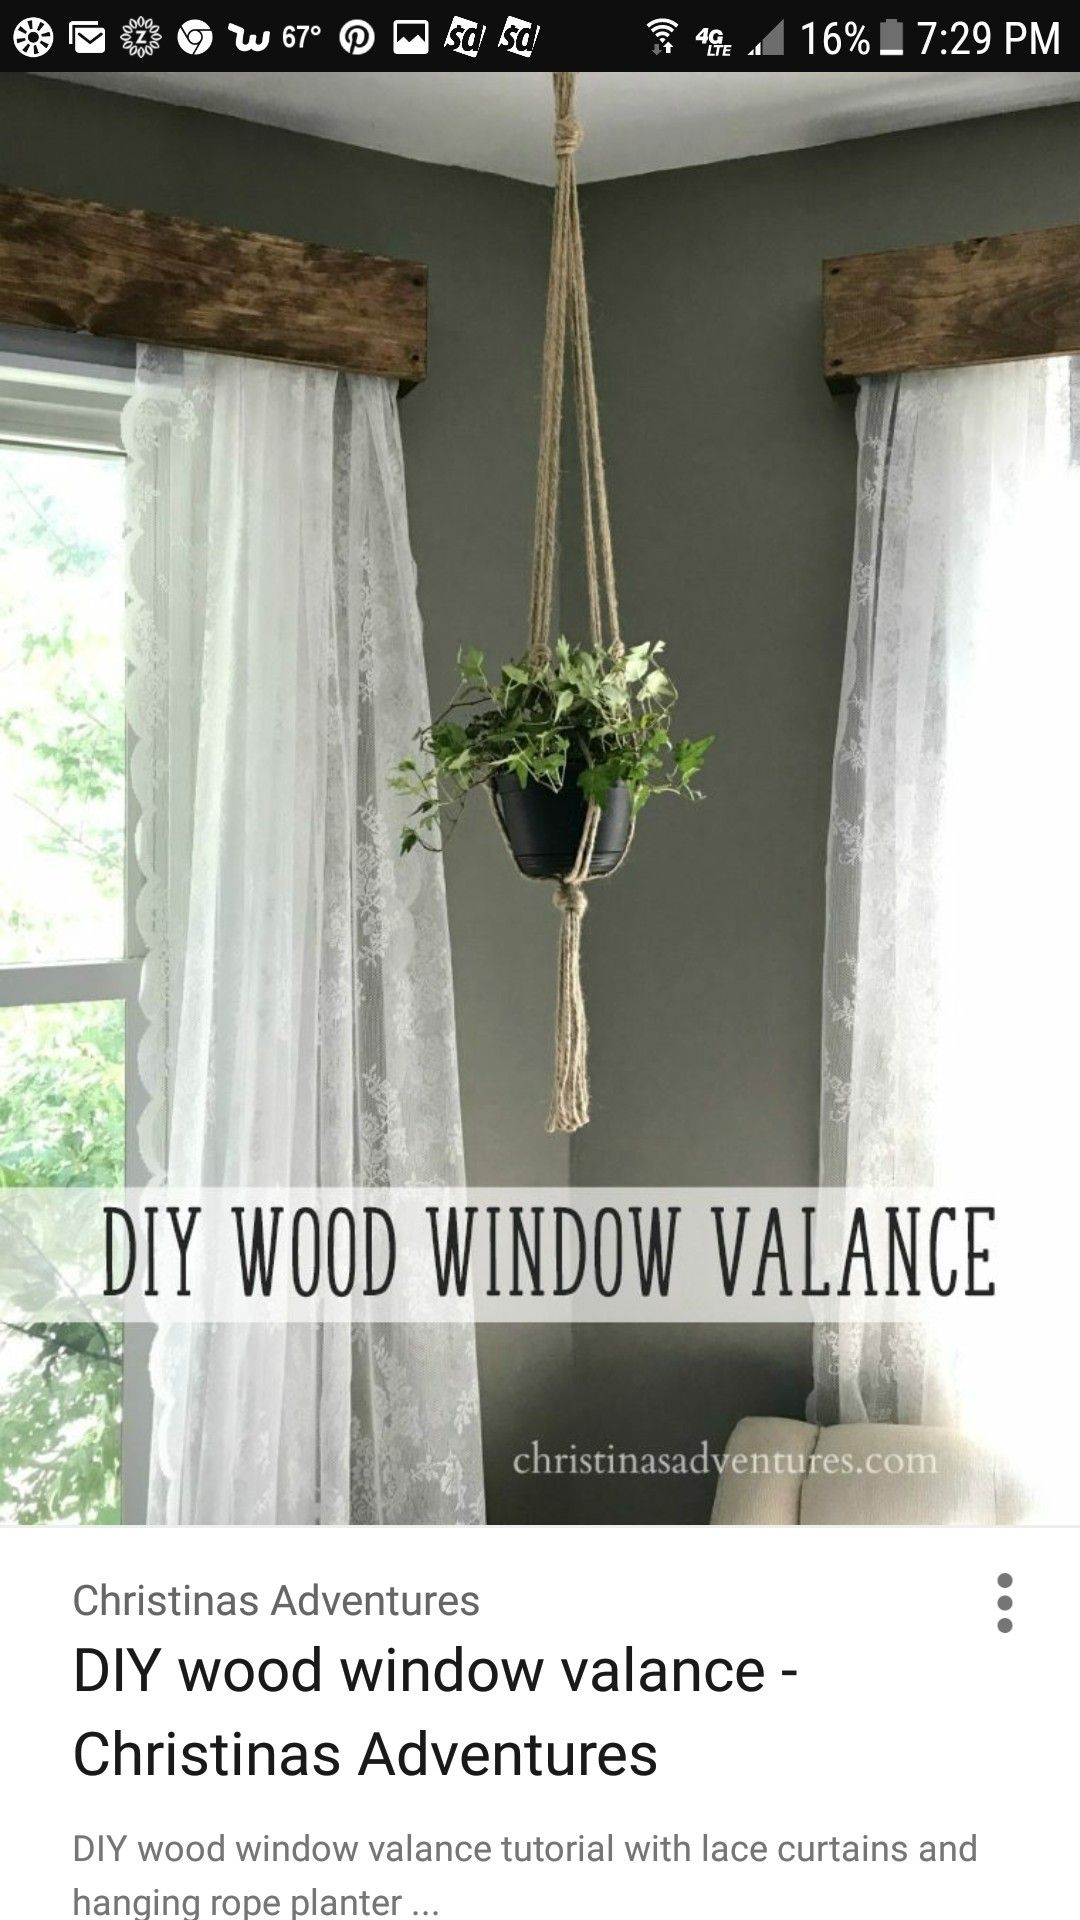 Window well decoration ideas  pin by mesha toner on home decor  pinterest  window mountain